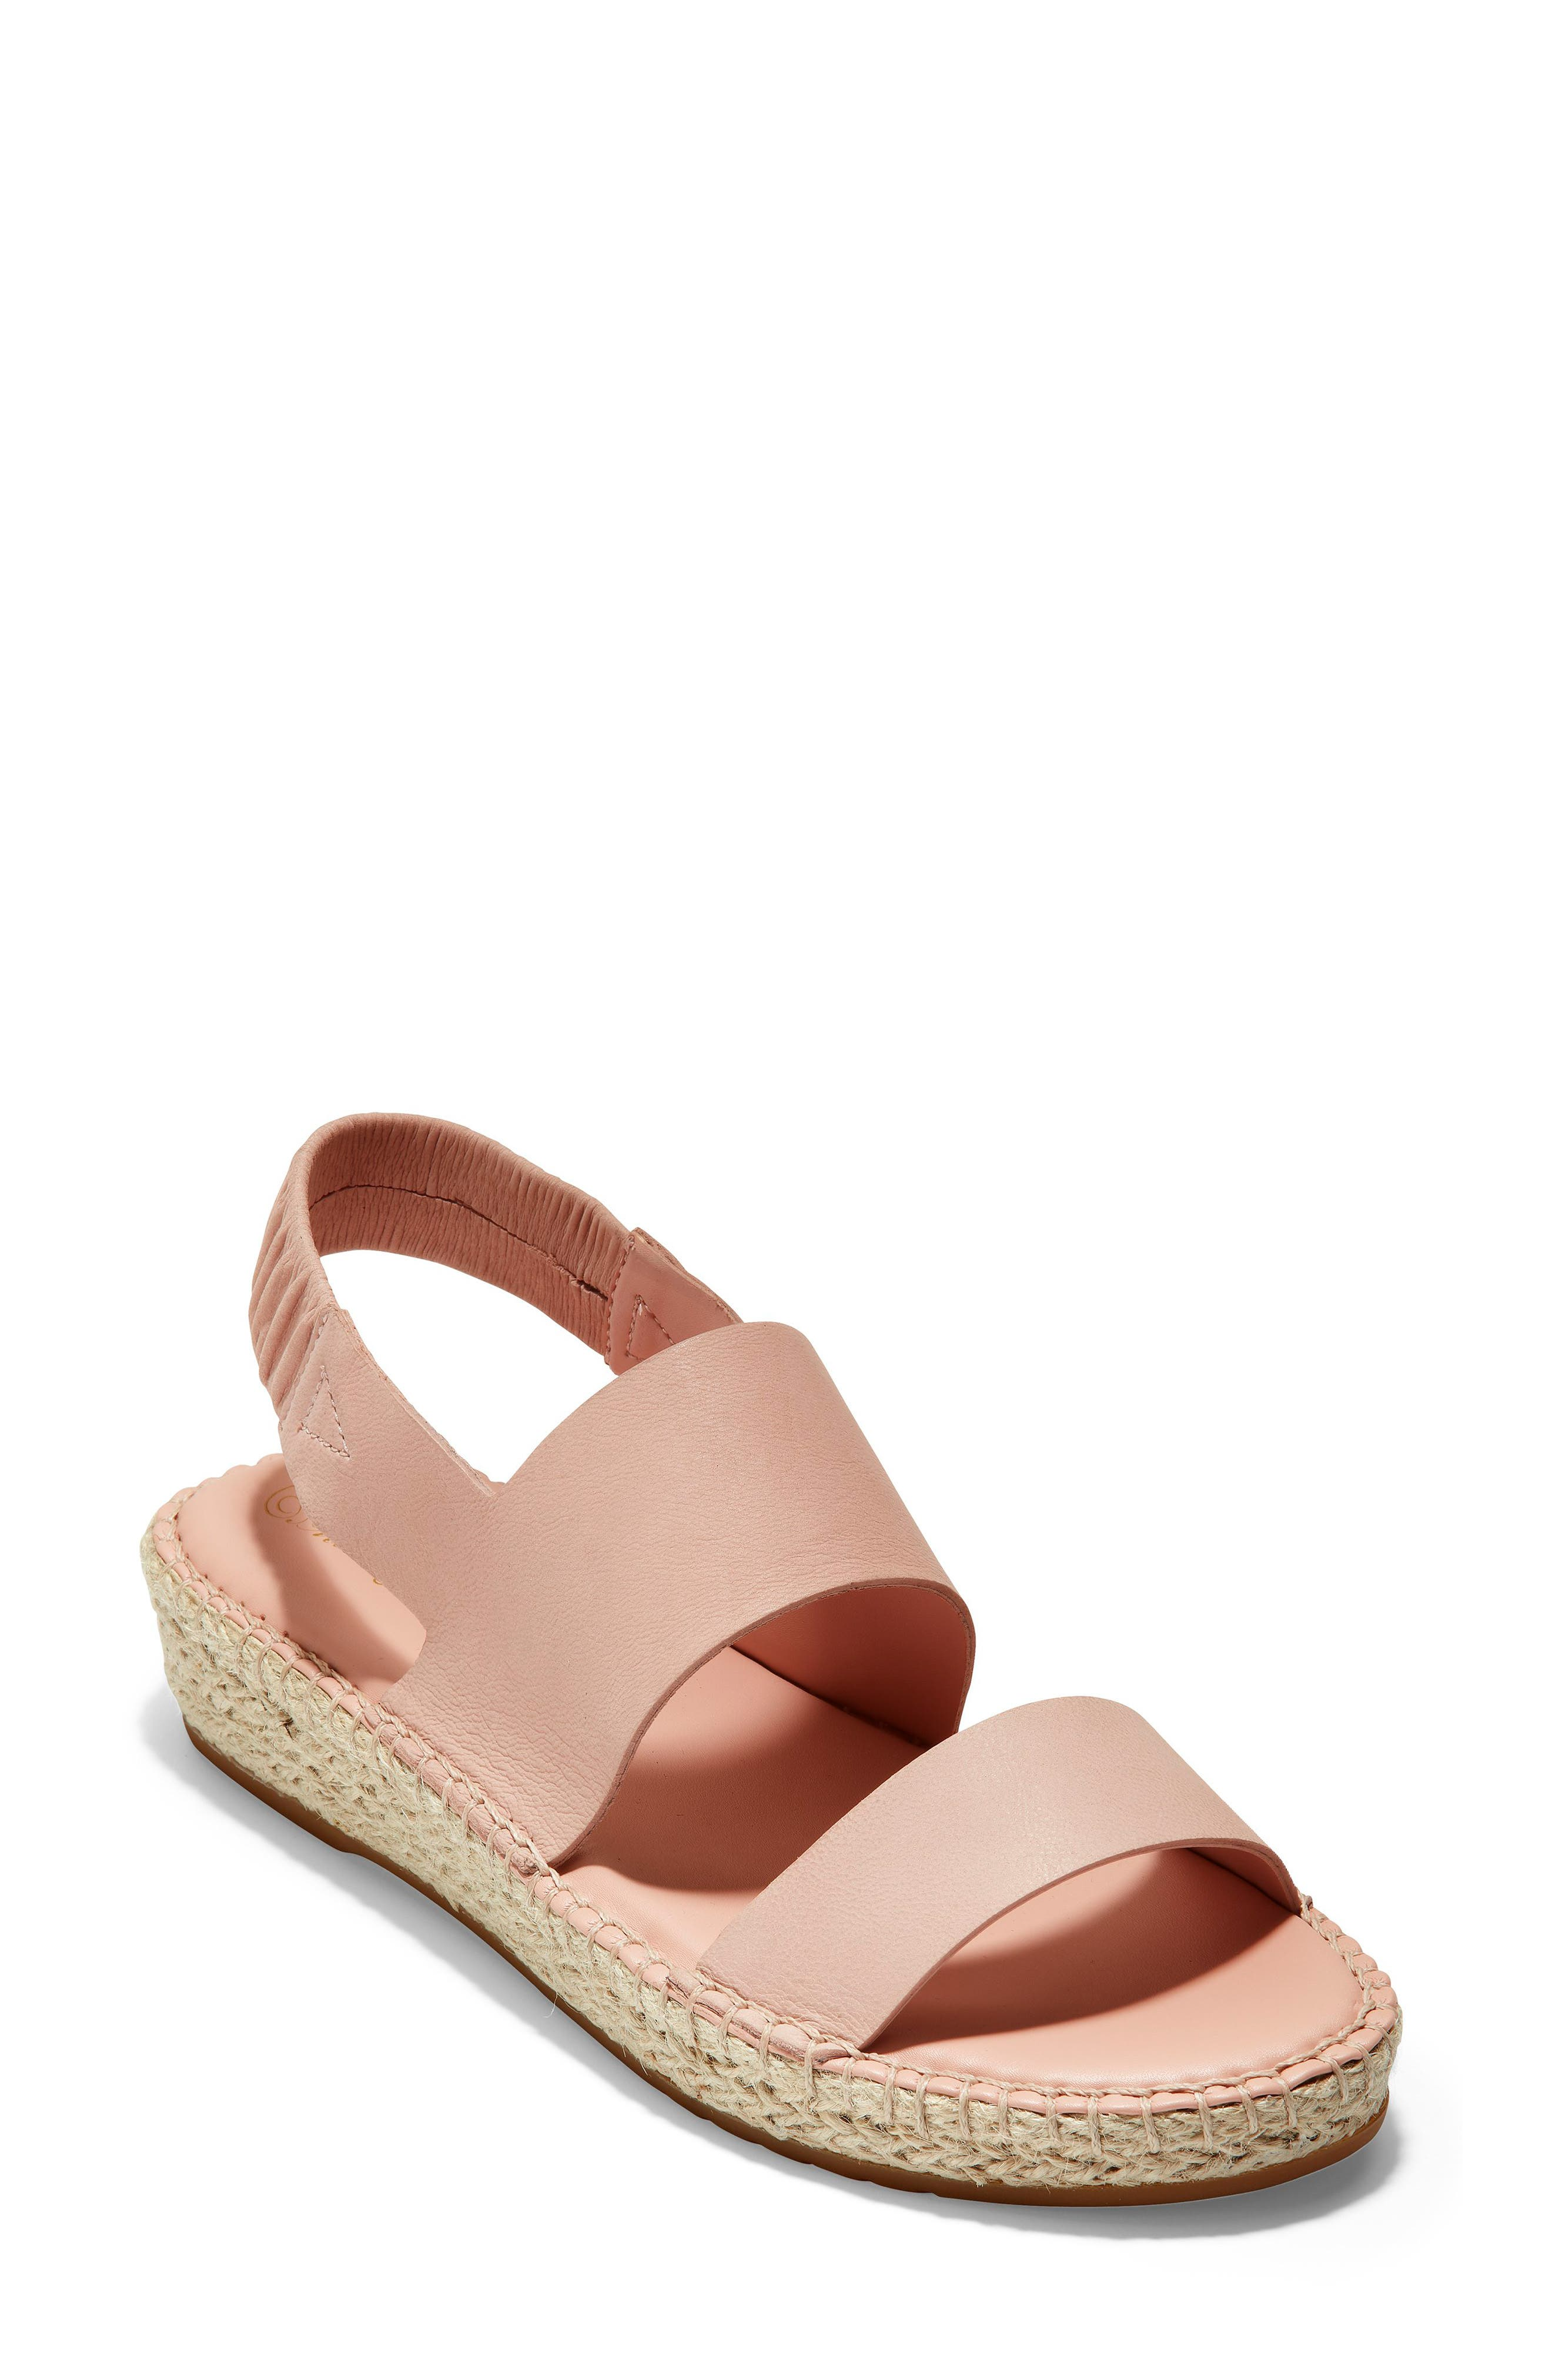 a6b3e81fb47 Cole Haan Women s Cloudfeel Slingback Platform Espadrille Sandals In Rose  Nubuck  Natural Fabric